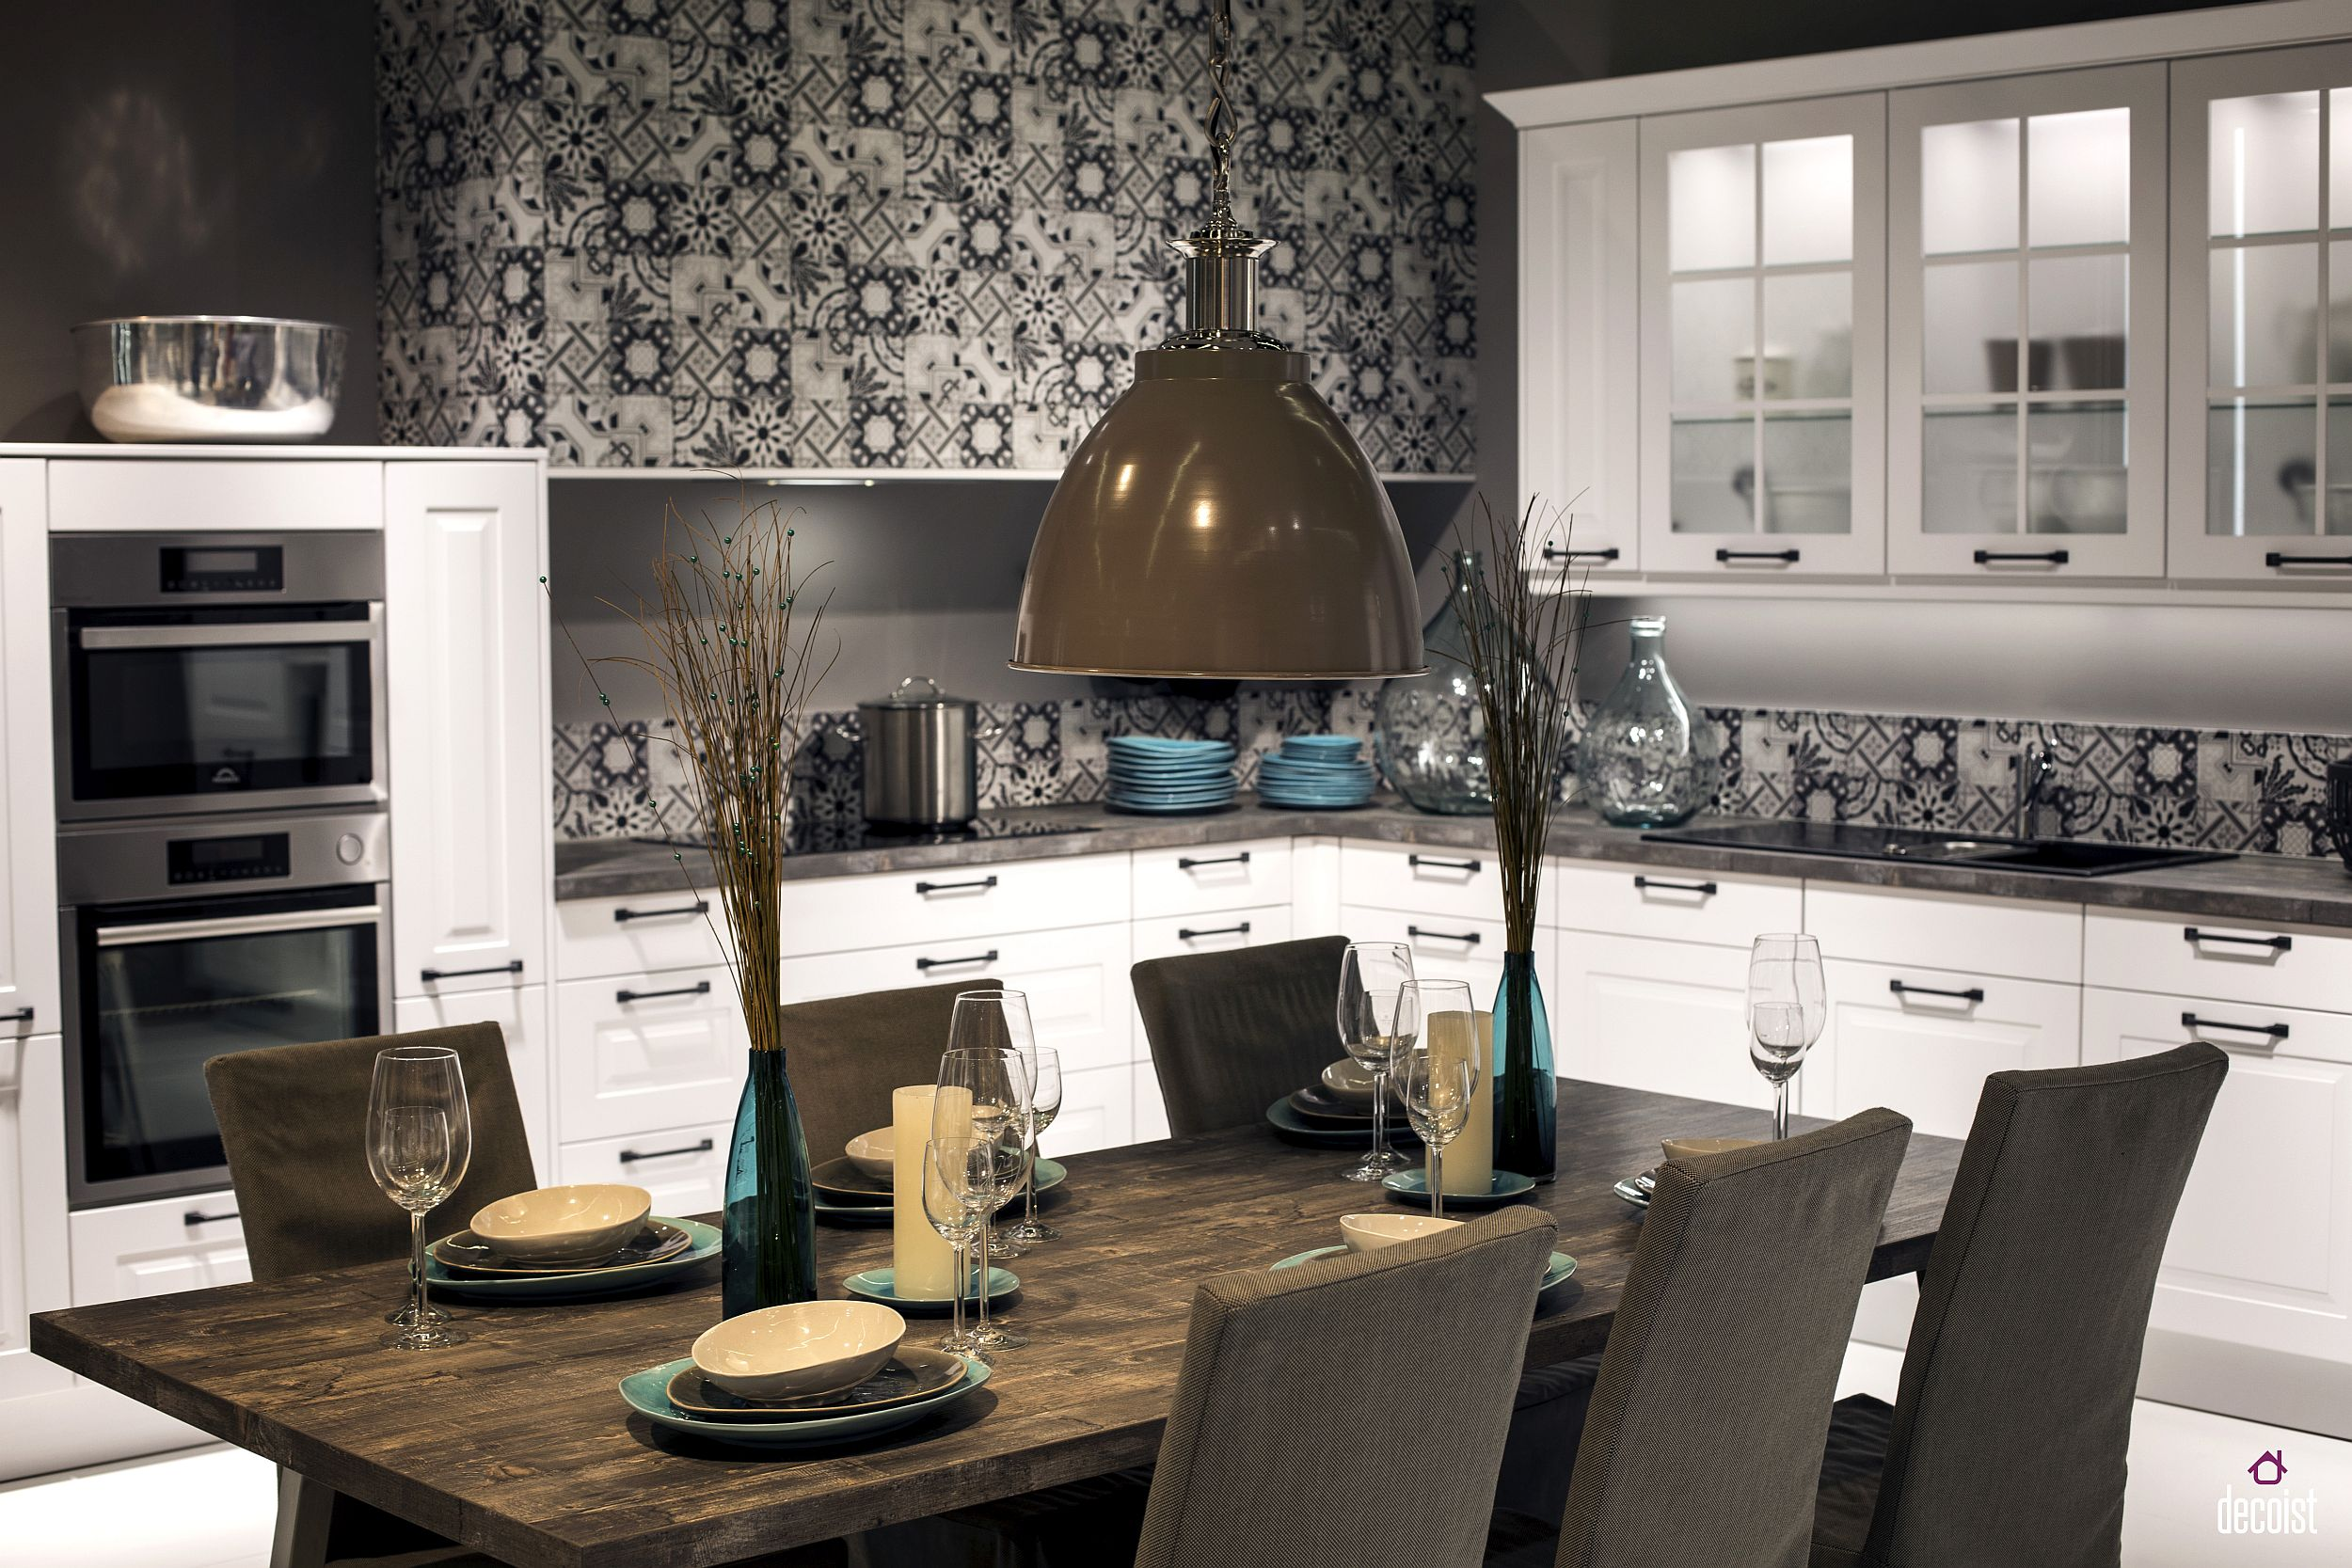 Modern rustic dining room table -  Dining Table Steals The Show Here View In Gallery Modern Rustic